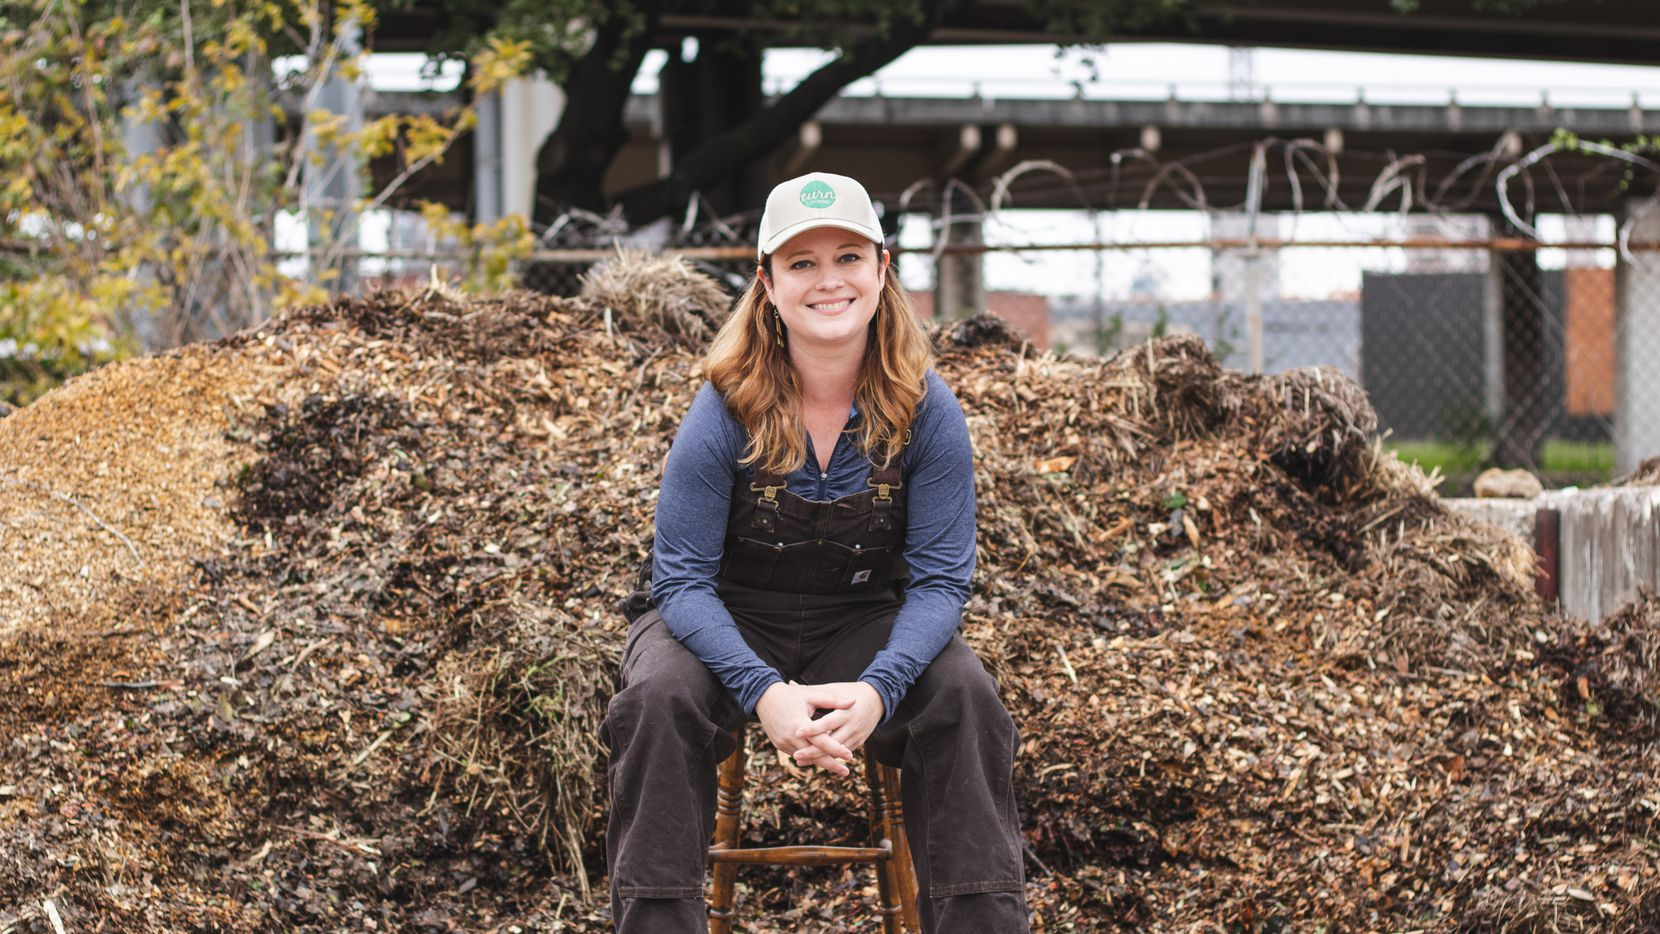 Lauren McMinn Clarke is the founder of Dallas-based Turn, a company that offers concierge composting for households, restaurants and other businesses. The company has a subscription-based business model. It picks up buckets of compost and swaps them for clean buckets.